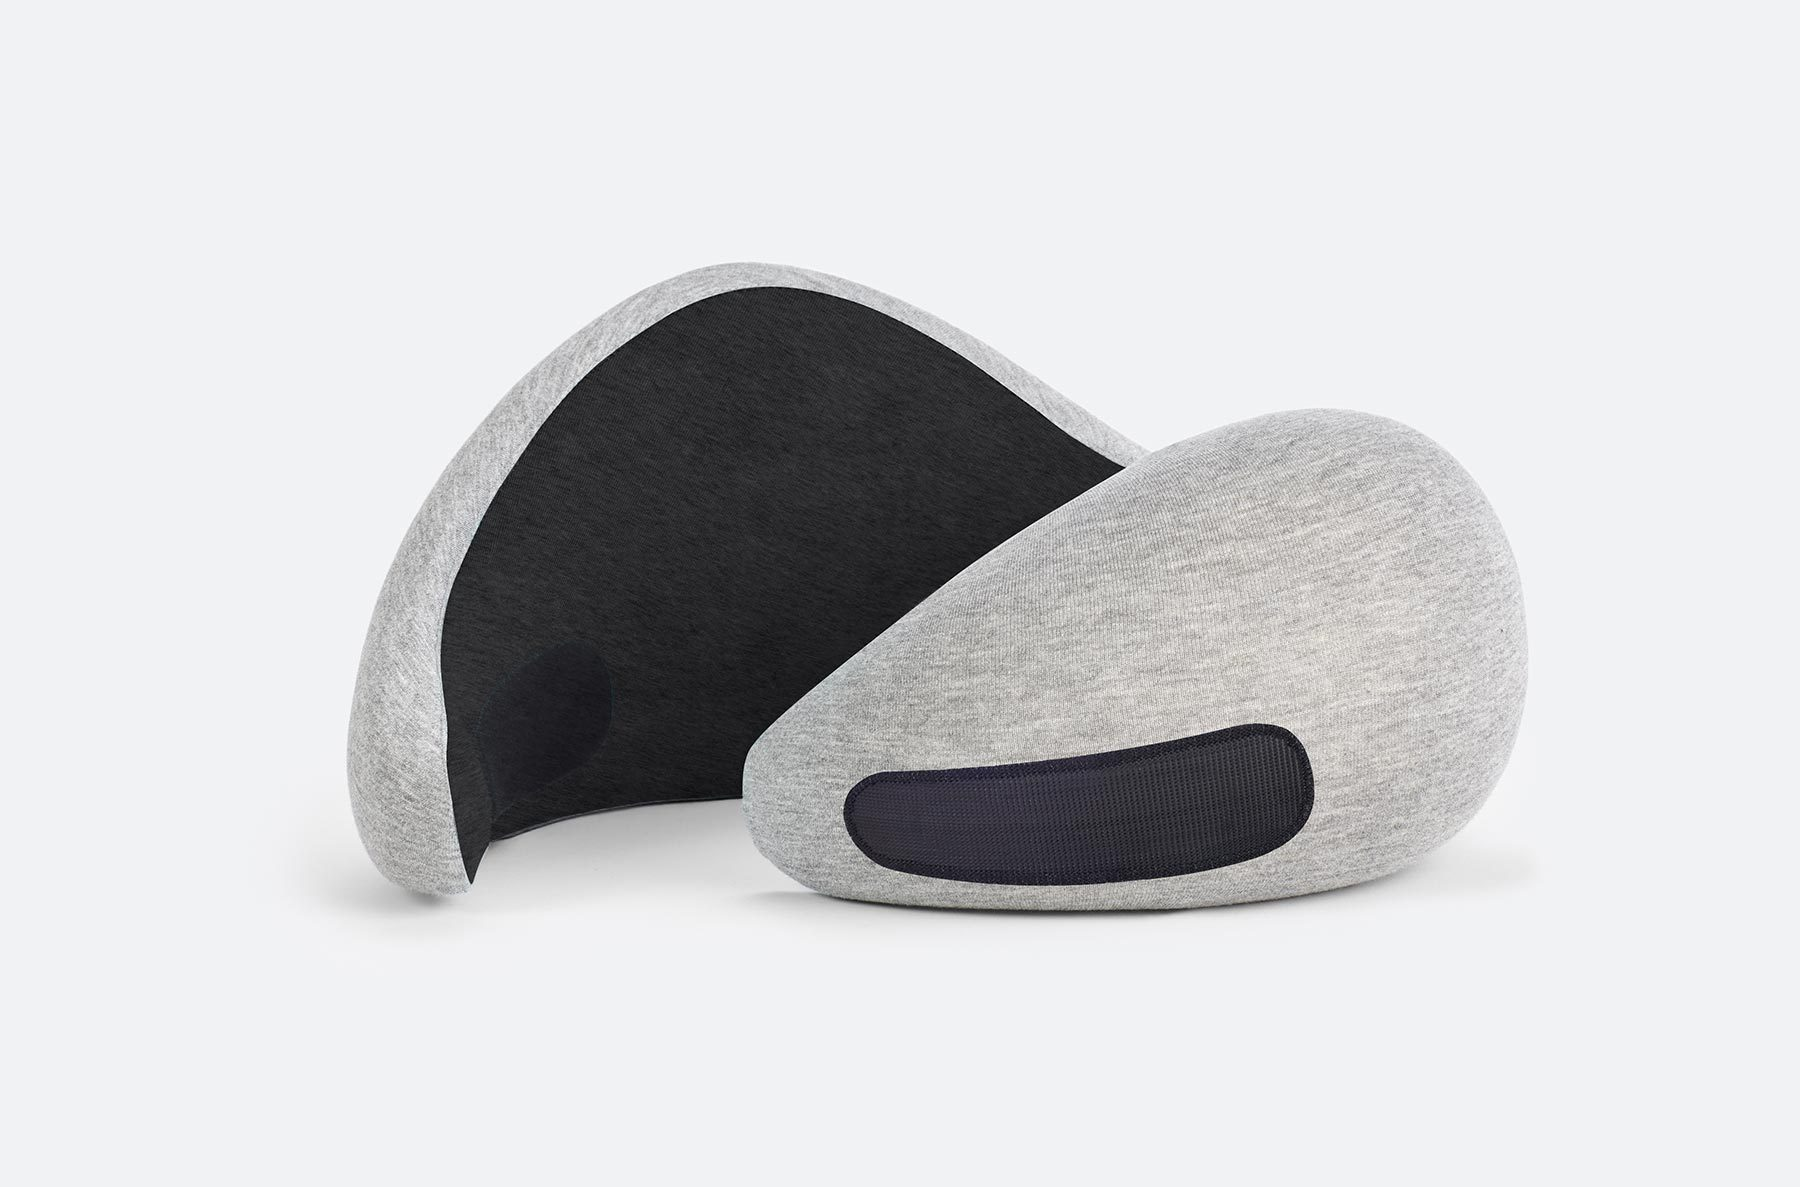 ostrichpillow-go-ostrich-pillow-official-travel-nap-midnight-grey-product-zoom4-velcro